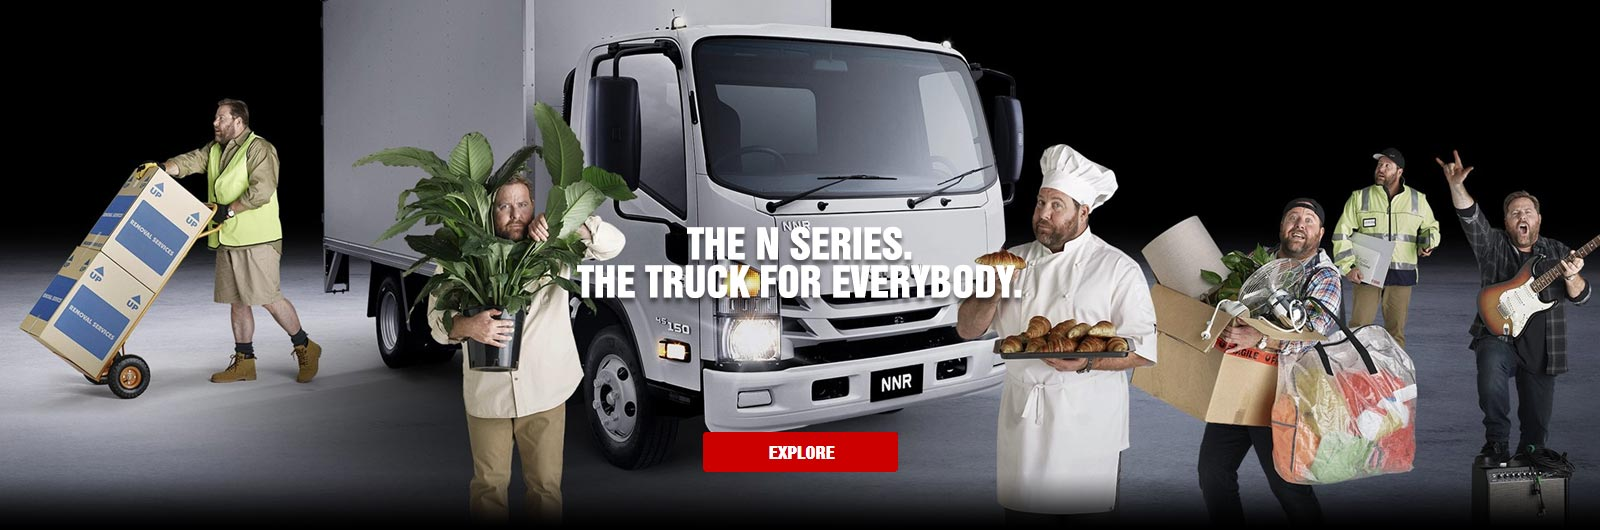 THE TRUCK FOR EVERYBODY.